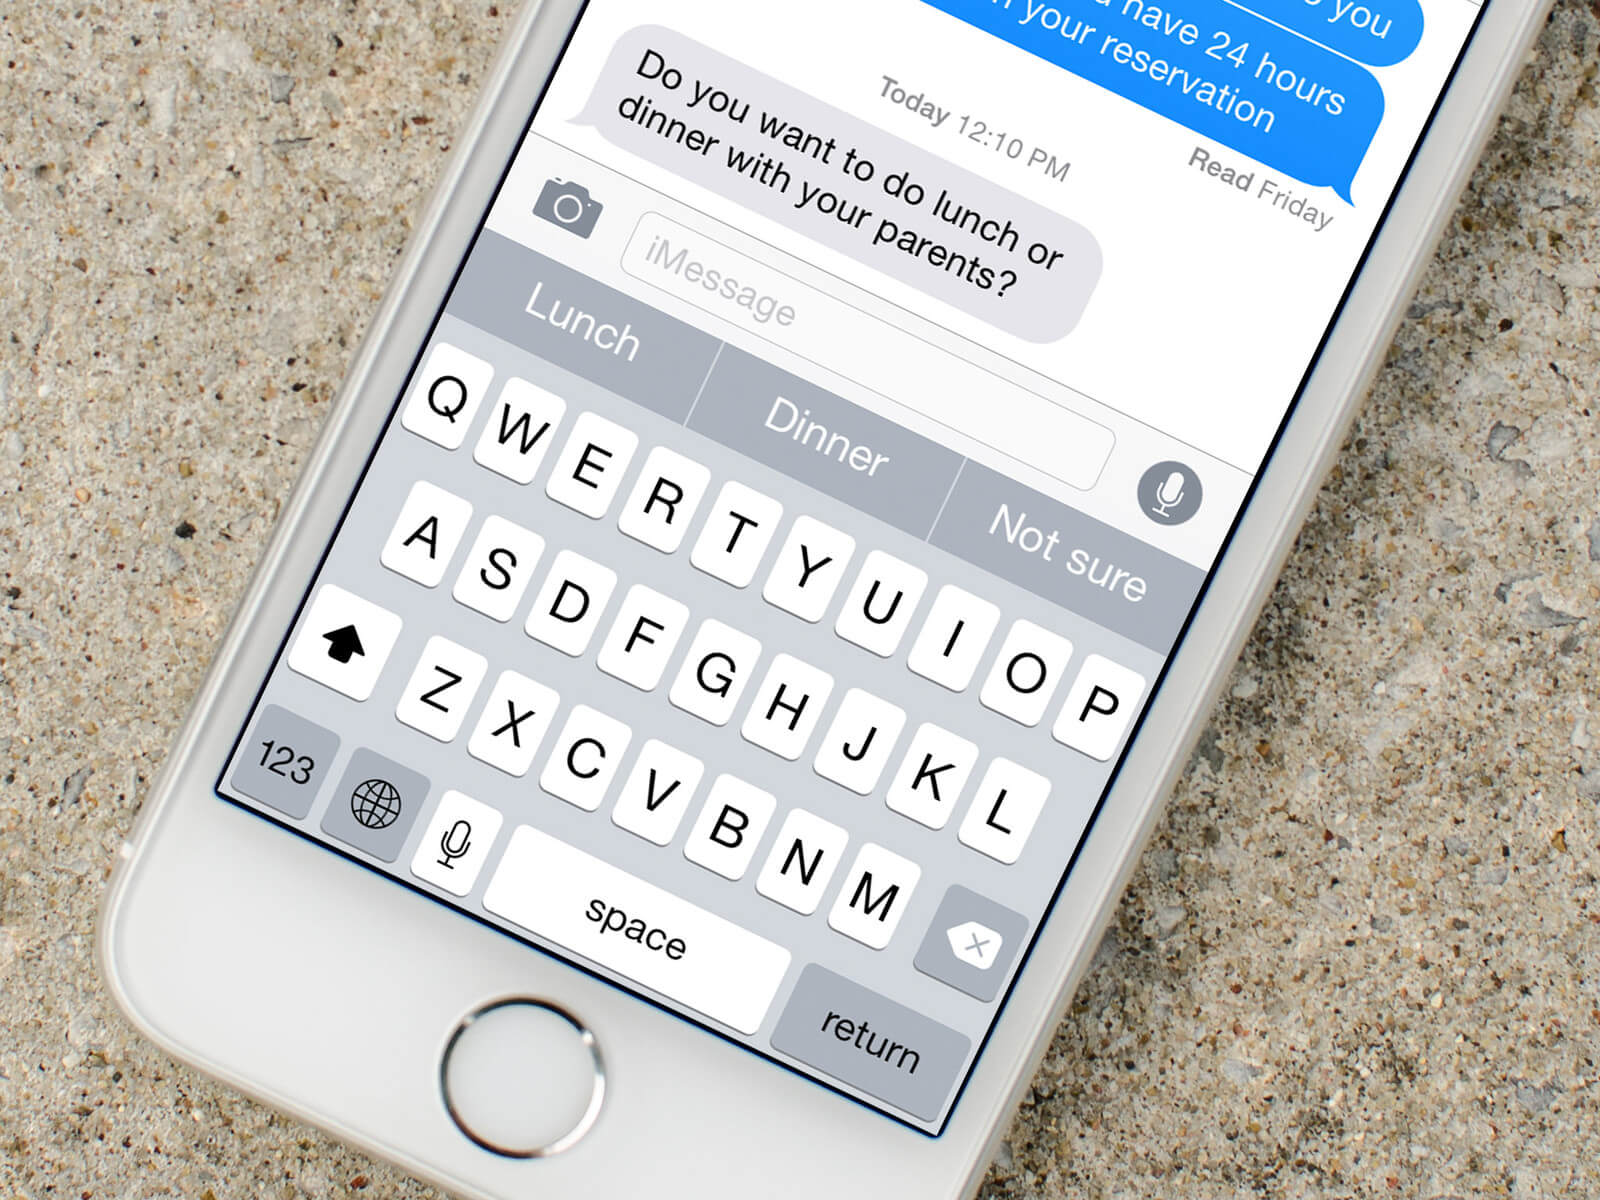 quicktype responses iphone 5 s hero - Apple explica como torna iPhones e Macs mais seguros